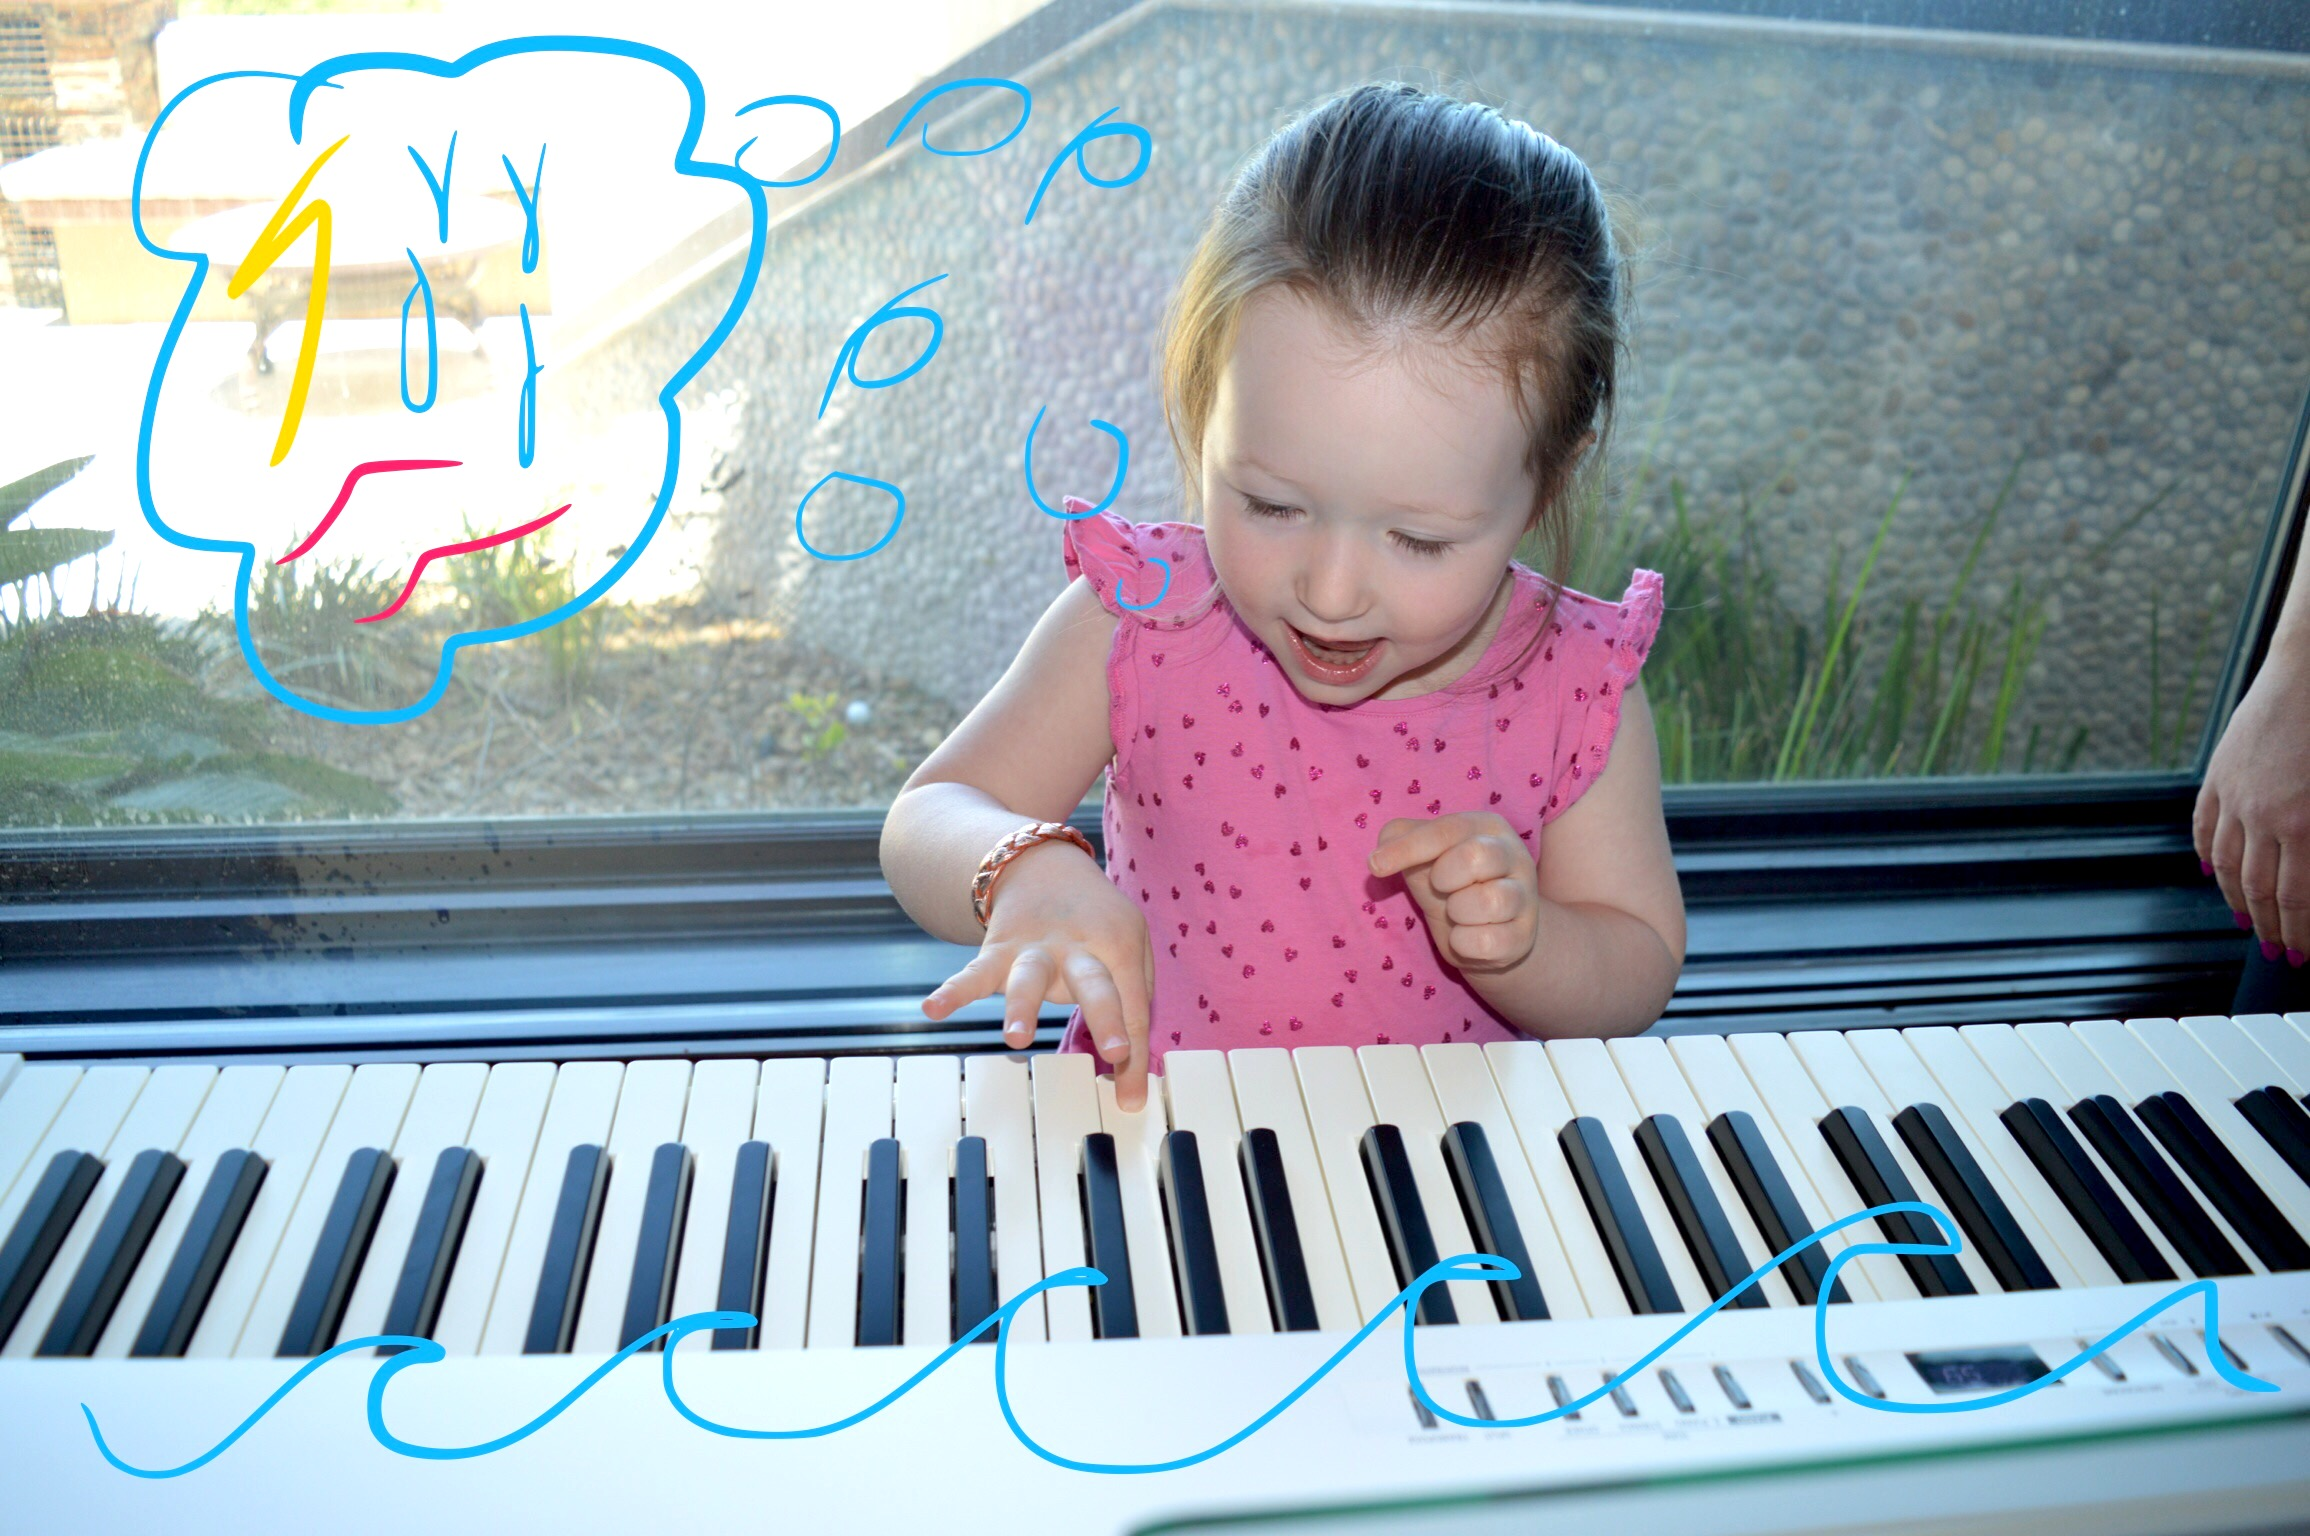 Kezi taking after her VEGASMAMA™, the piano keys were playing outdoor elements like waves crashing, lightning bolts & songs of the sea.